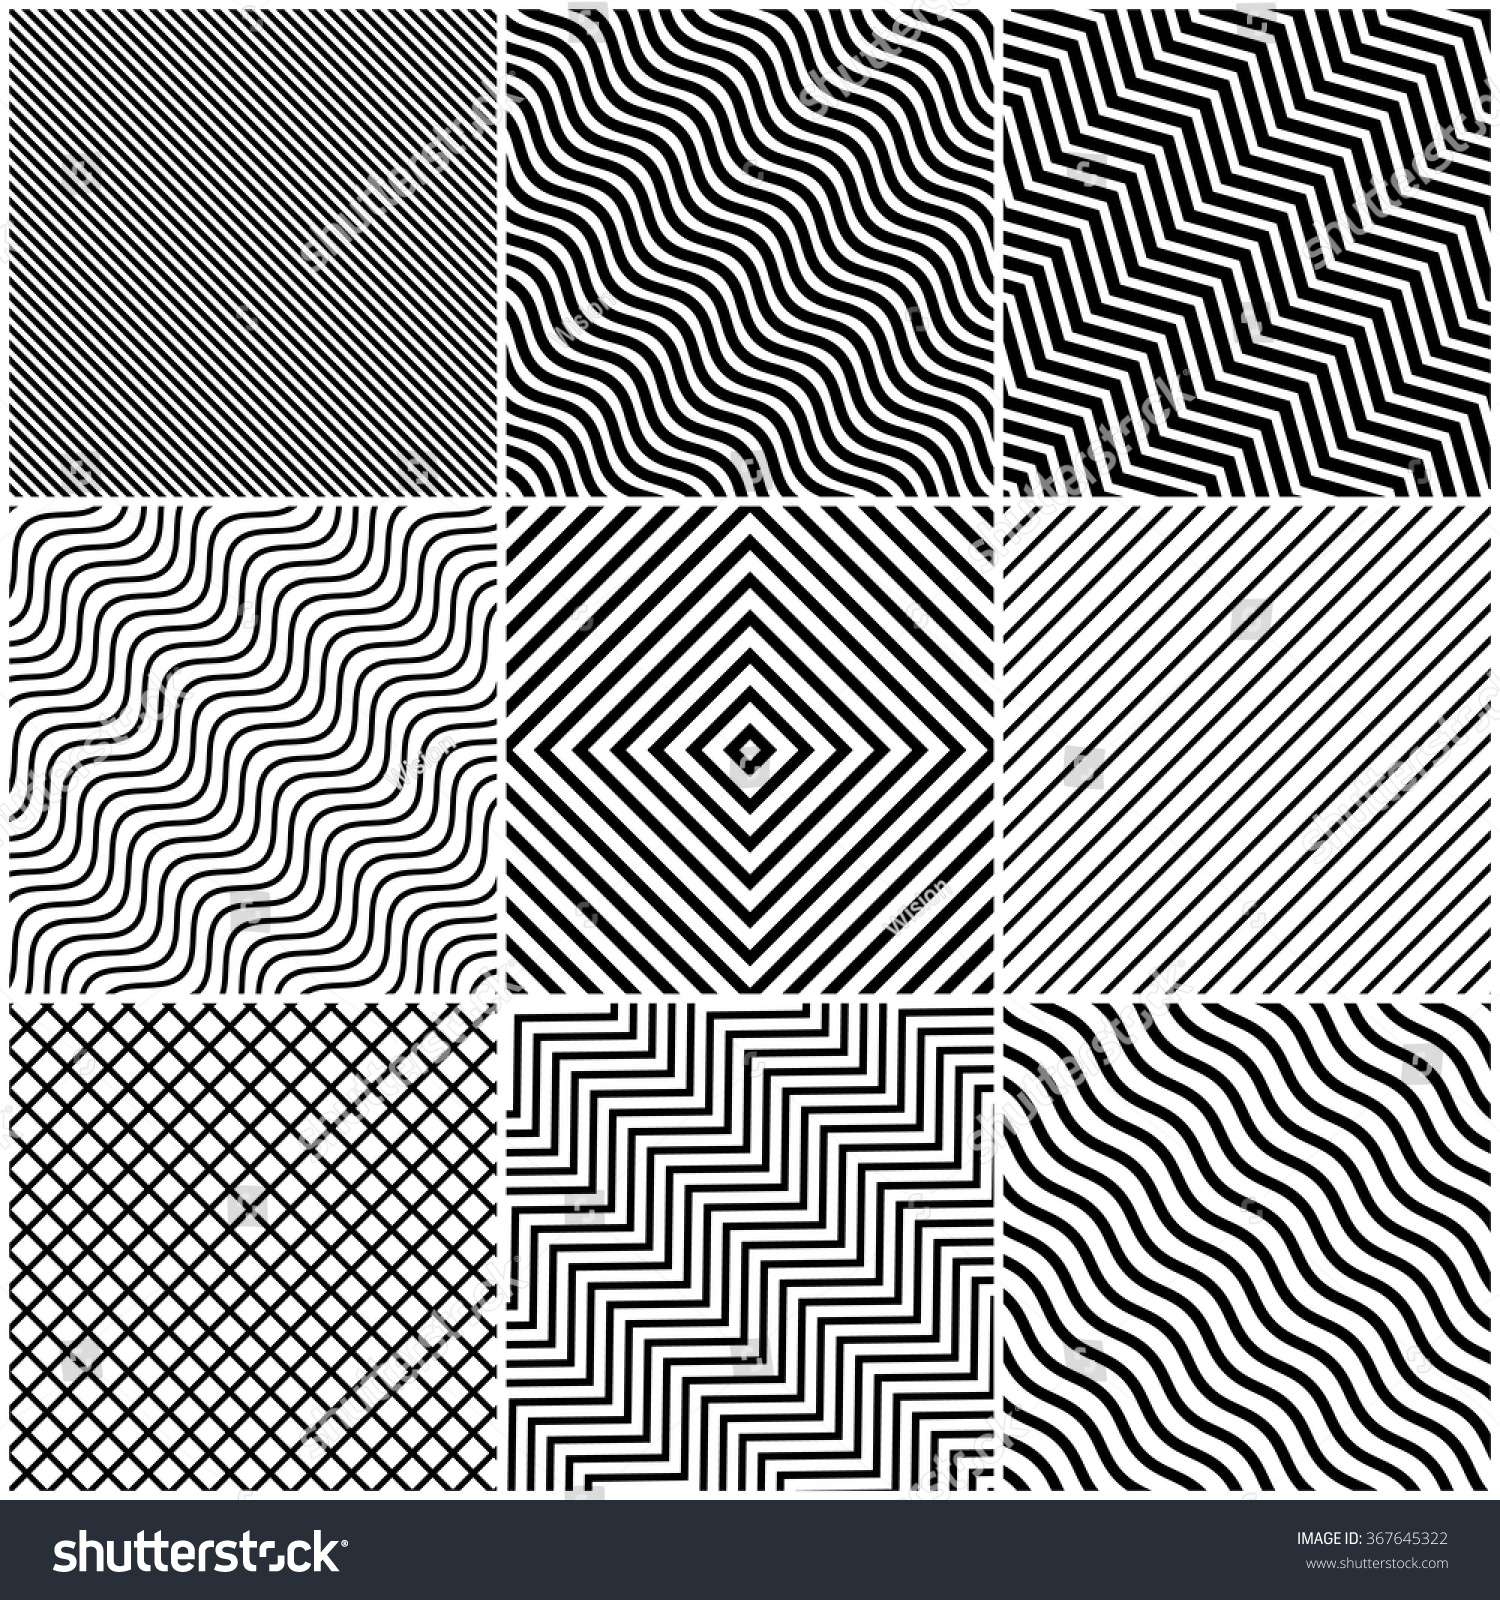 A Line Design : Simple slanted black lines background set stock vector